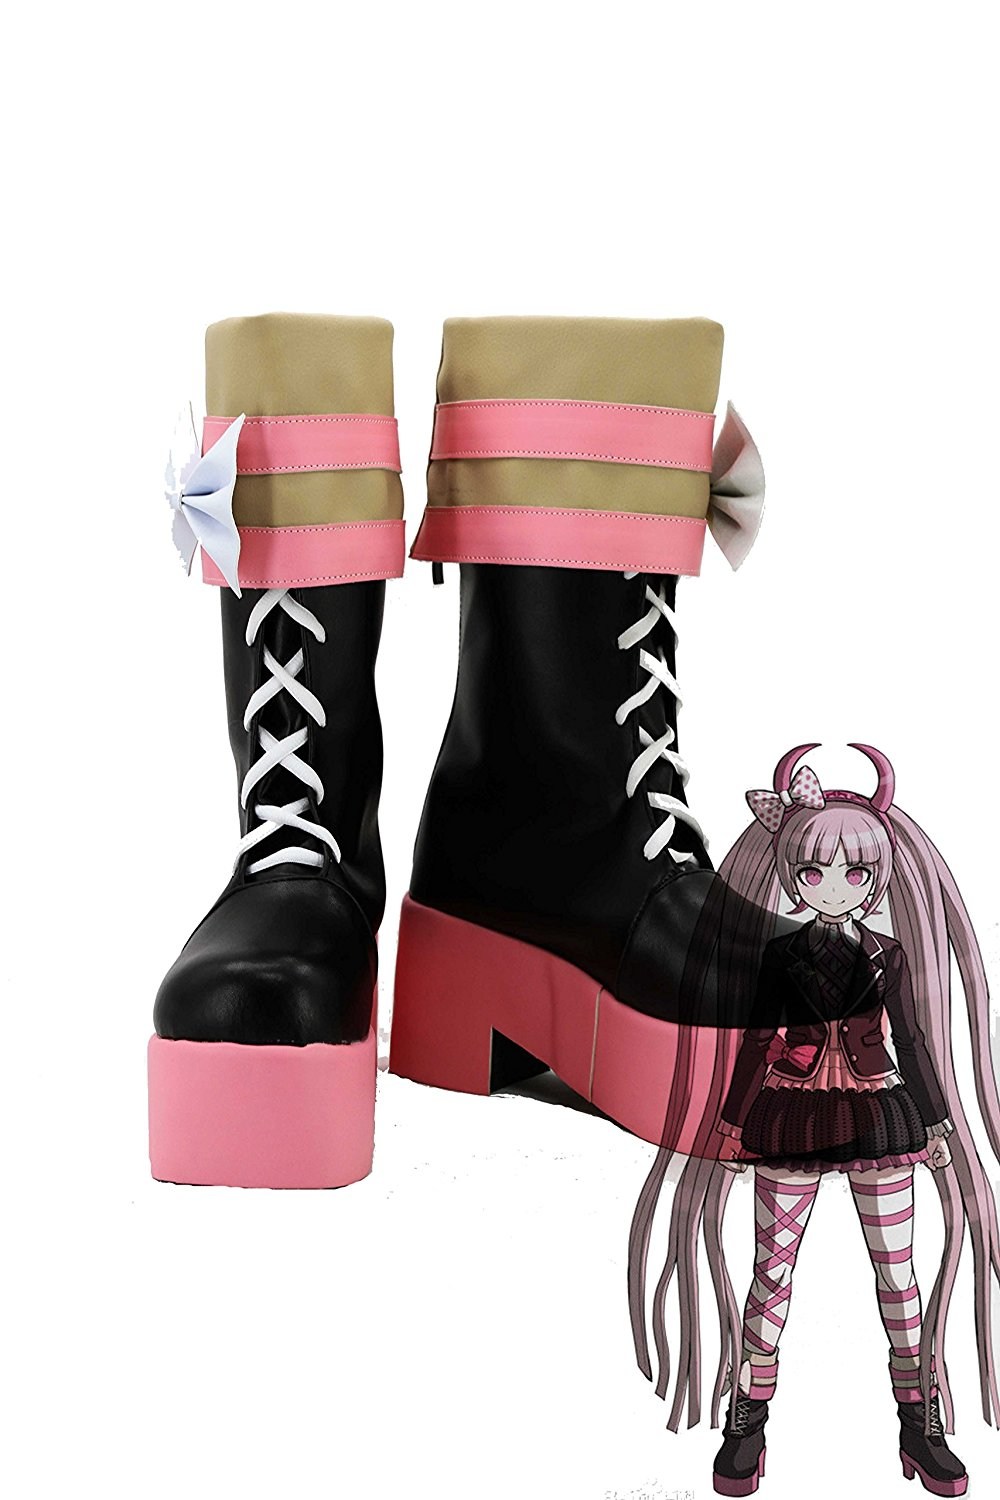 Kotoko Utsugi Shoes Cosplay Danganronpa Kotoko Utsugi Cosplay Shoes Boots Custom Made for Unisex Any Size